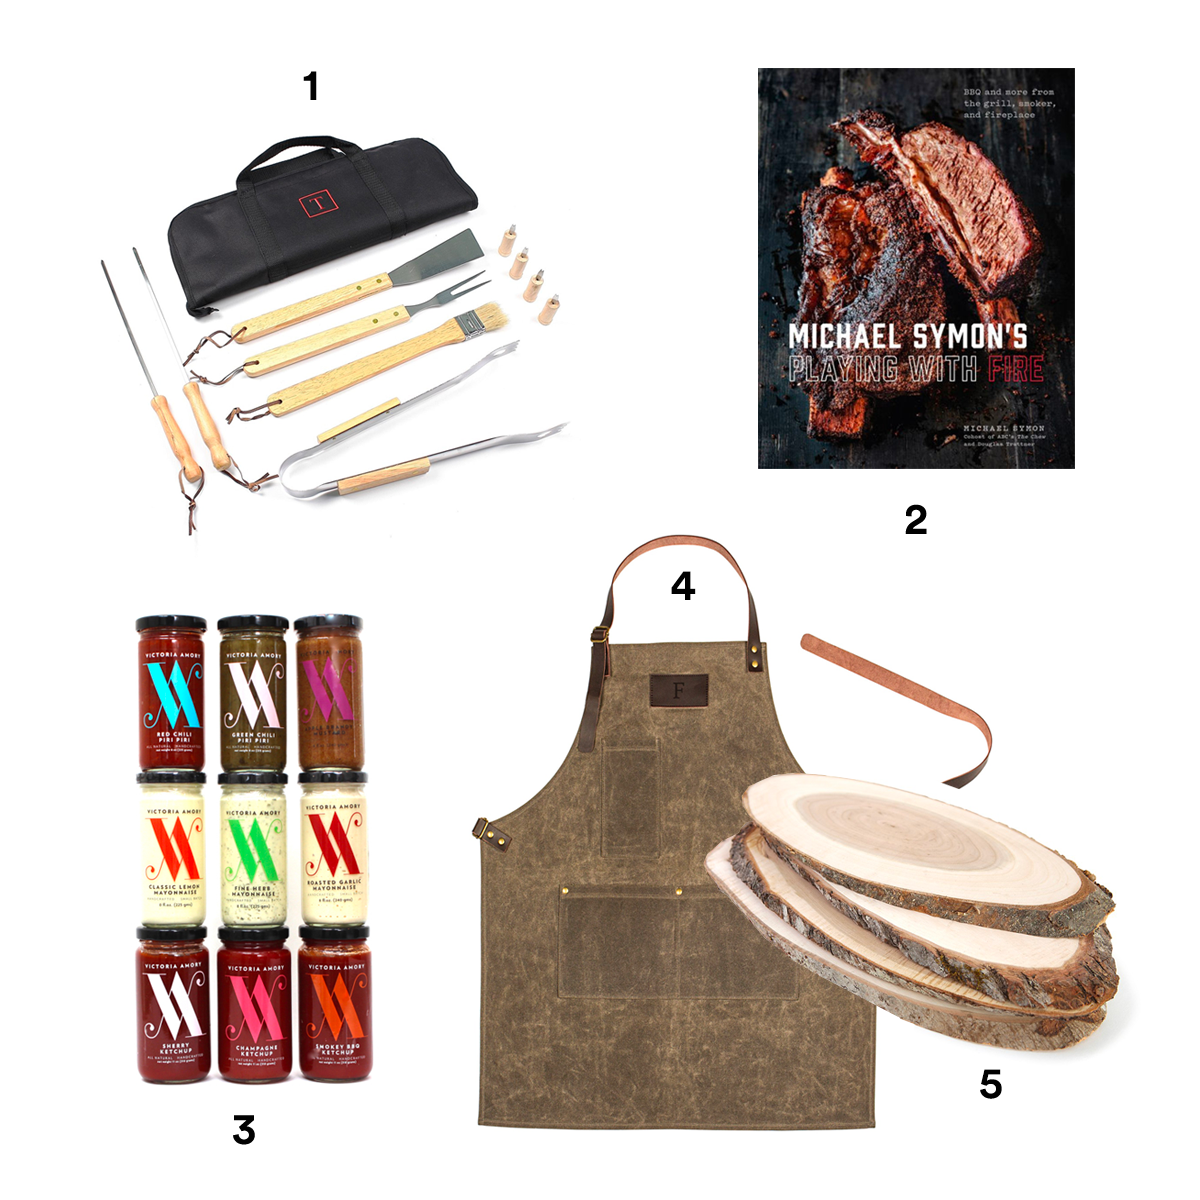 1) CATHY'S CONCEPTS Monogram BBQ Grill Tools, available at Nordstrom. 2) MICHAEL SYMON'S Playing With Fire: BBQ and More from the Grill, Smoker, and Fireplace, available at Barnes & Noble. 3) VICTORIA AMORY & CO. Condiment Collection, available at Sur La Table. 4) CATHY'S CONCEPTS Monogram Apron, available at Nordstrom. 5) SCHMIDT BROTHERS BBQ Grill Planks, available at Bloomingdale's.